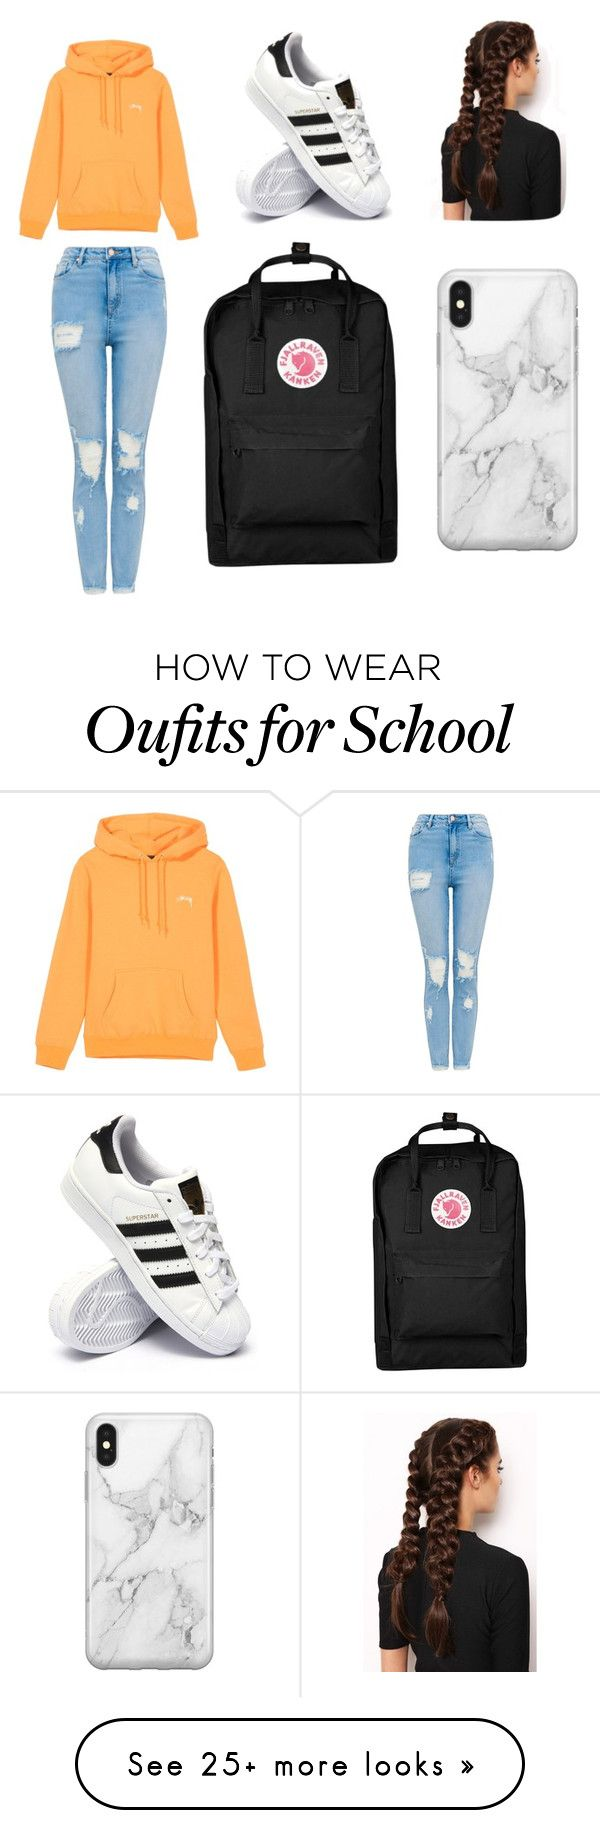 """lazy day @ school"" by rowantace on Polyvore featuring adidas, LullaBellz, Recover and Fjällräven"